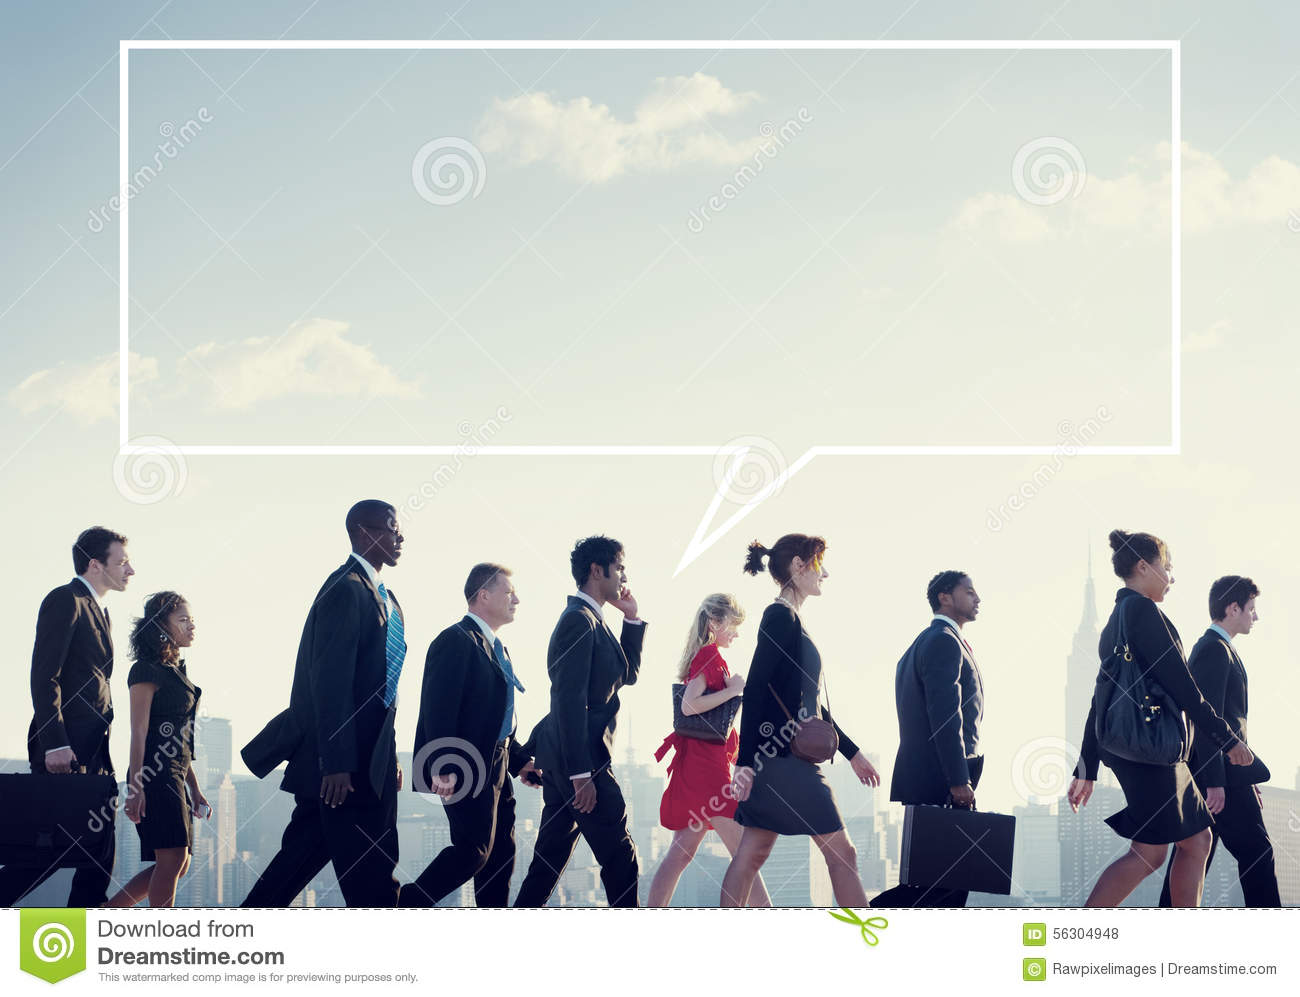 Team Business People Corporate Walking City Concept